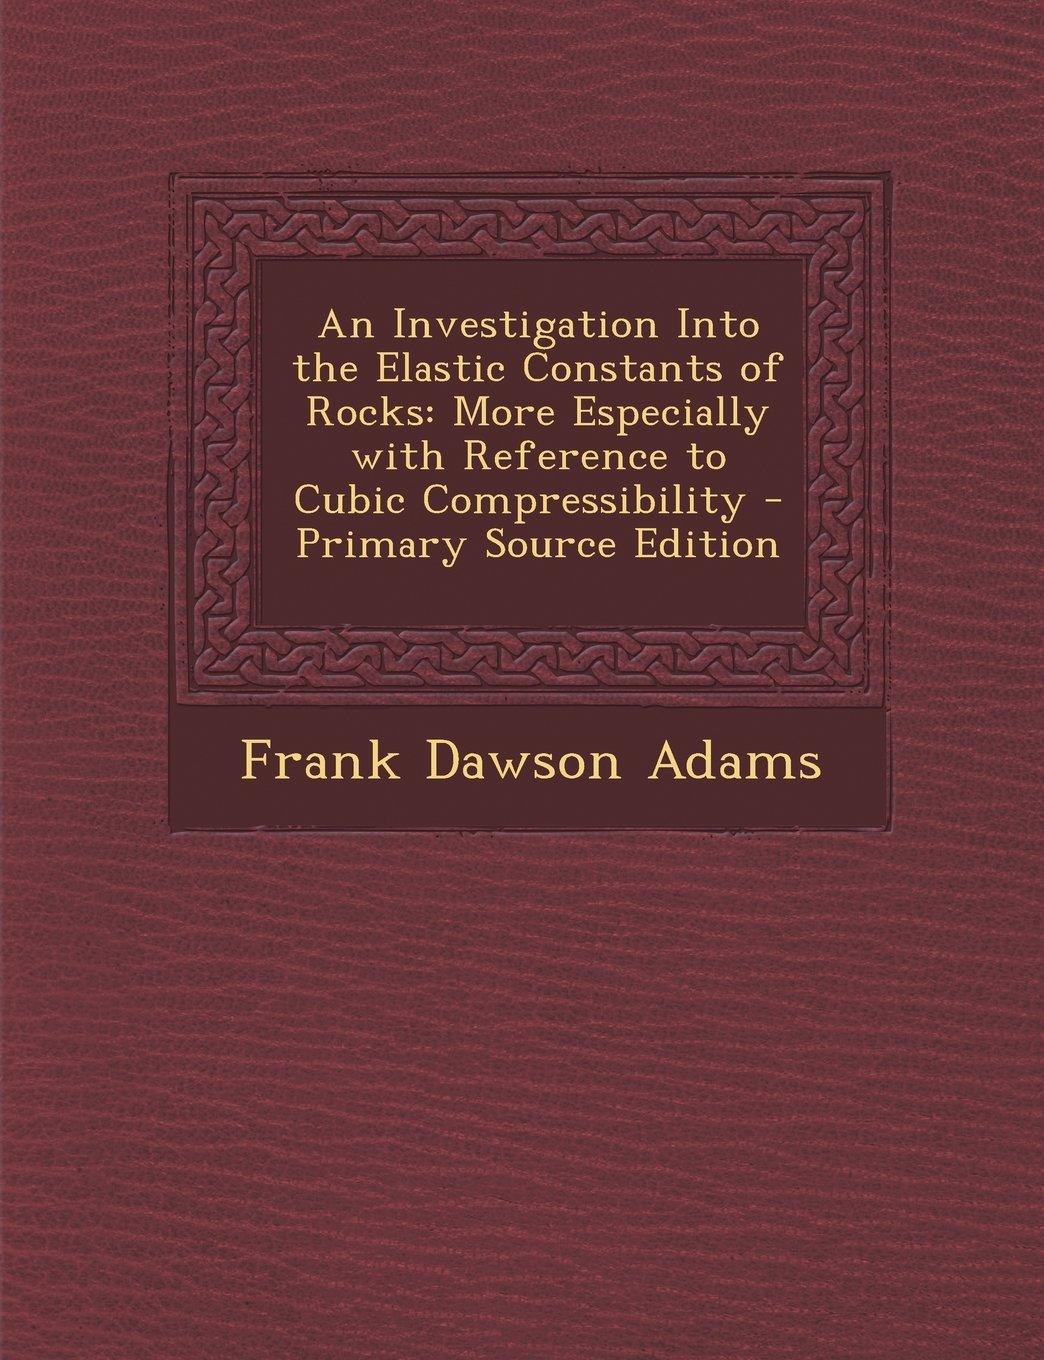 Download An Investigation Into the Elastic Constants of Rocks: More Especially with Reference to Cubic Compressibility ebook